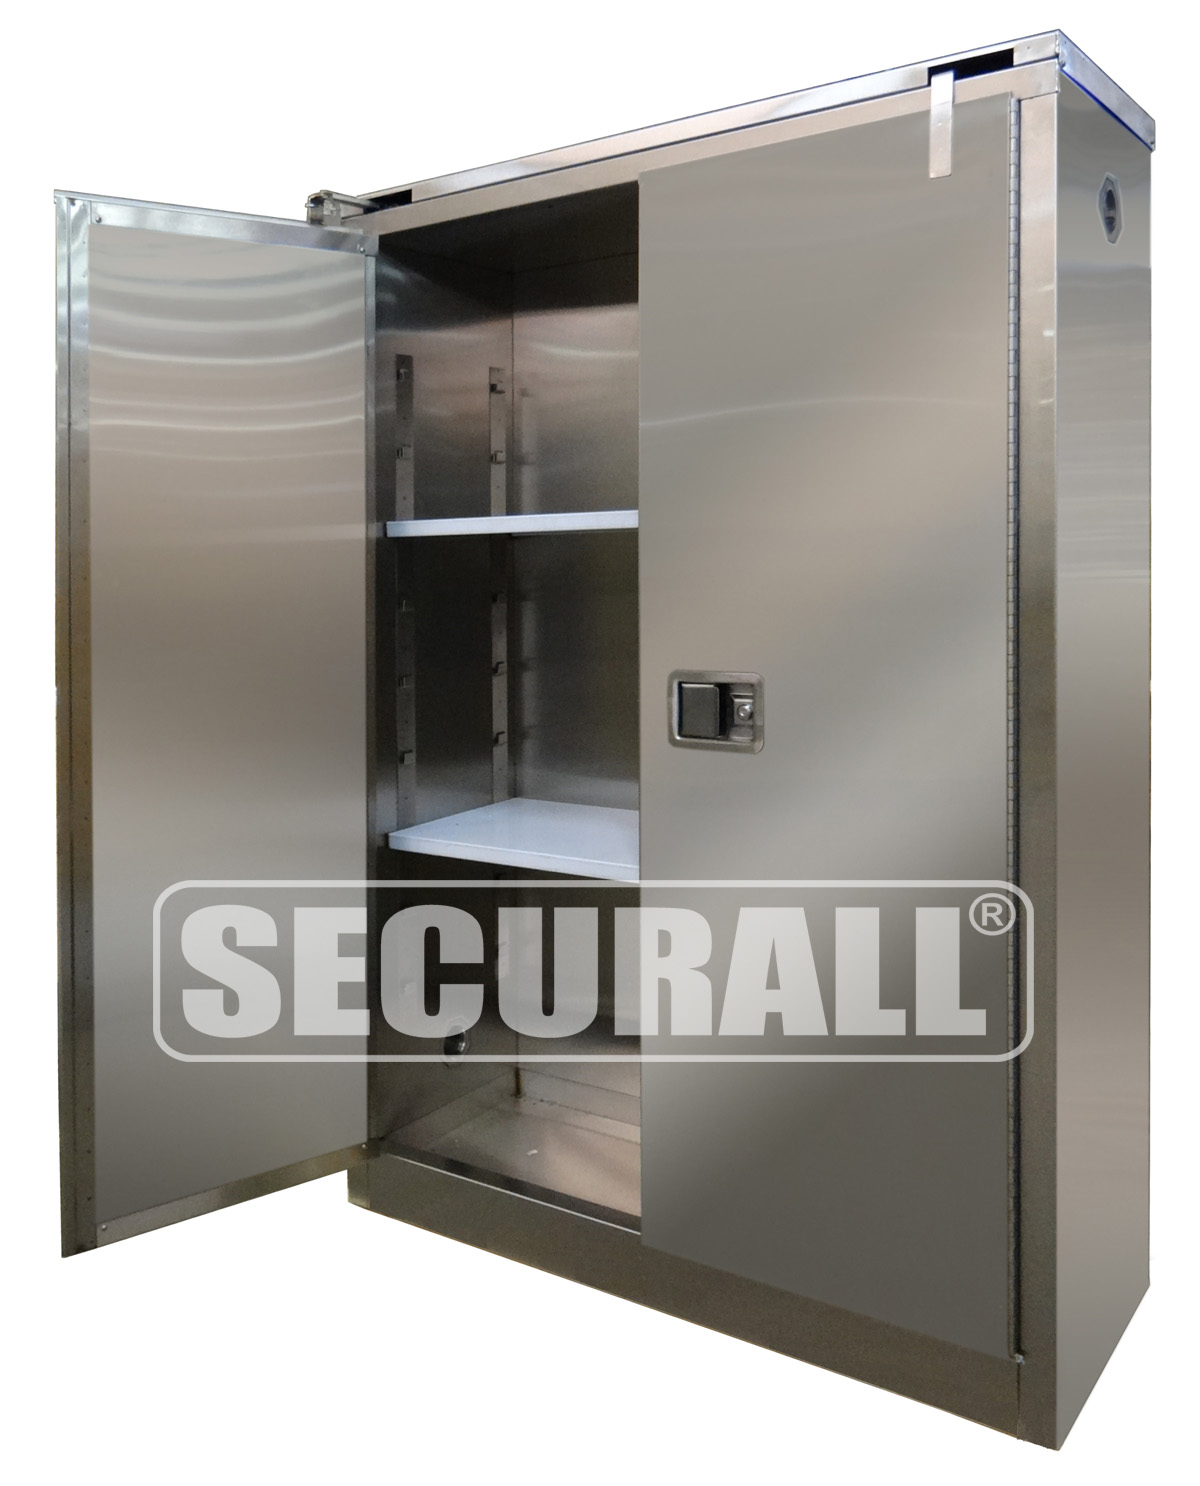 securall stainless steel storage cabinets for flammables and hazardous materials stainless. Black Bedroom Furniture Sets. Home Design Ideas